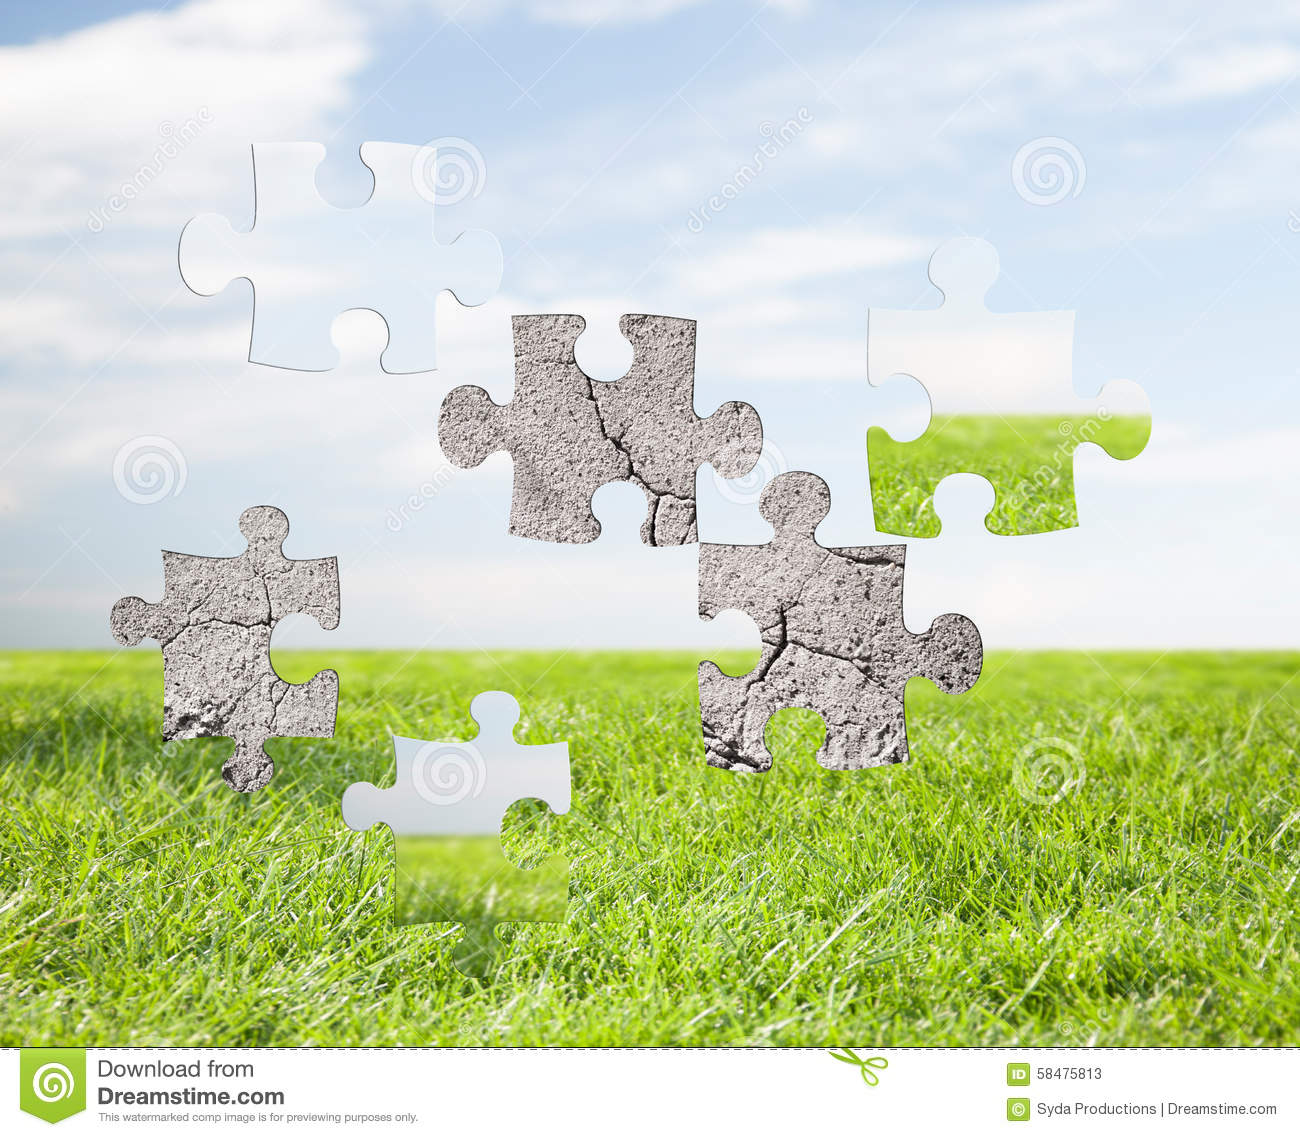 Nature Ecology: Concrete Puzzle Over Blue Sky And Grass Background Stock